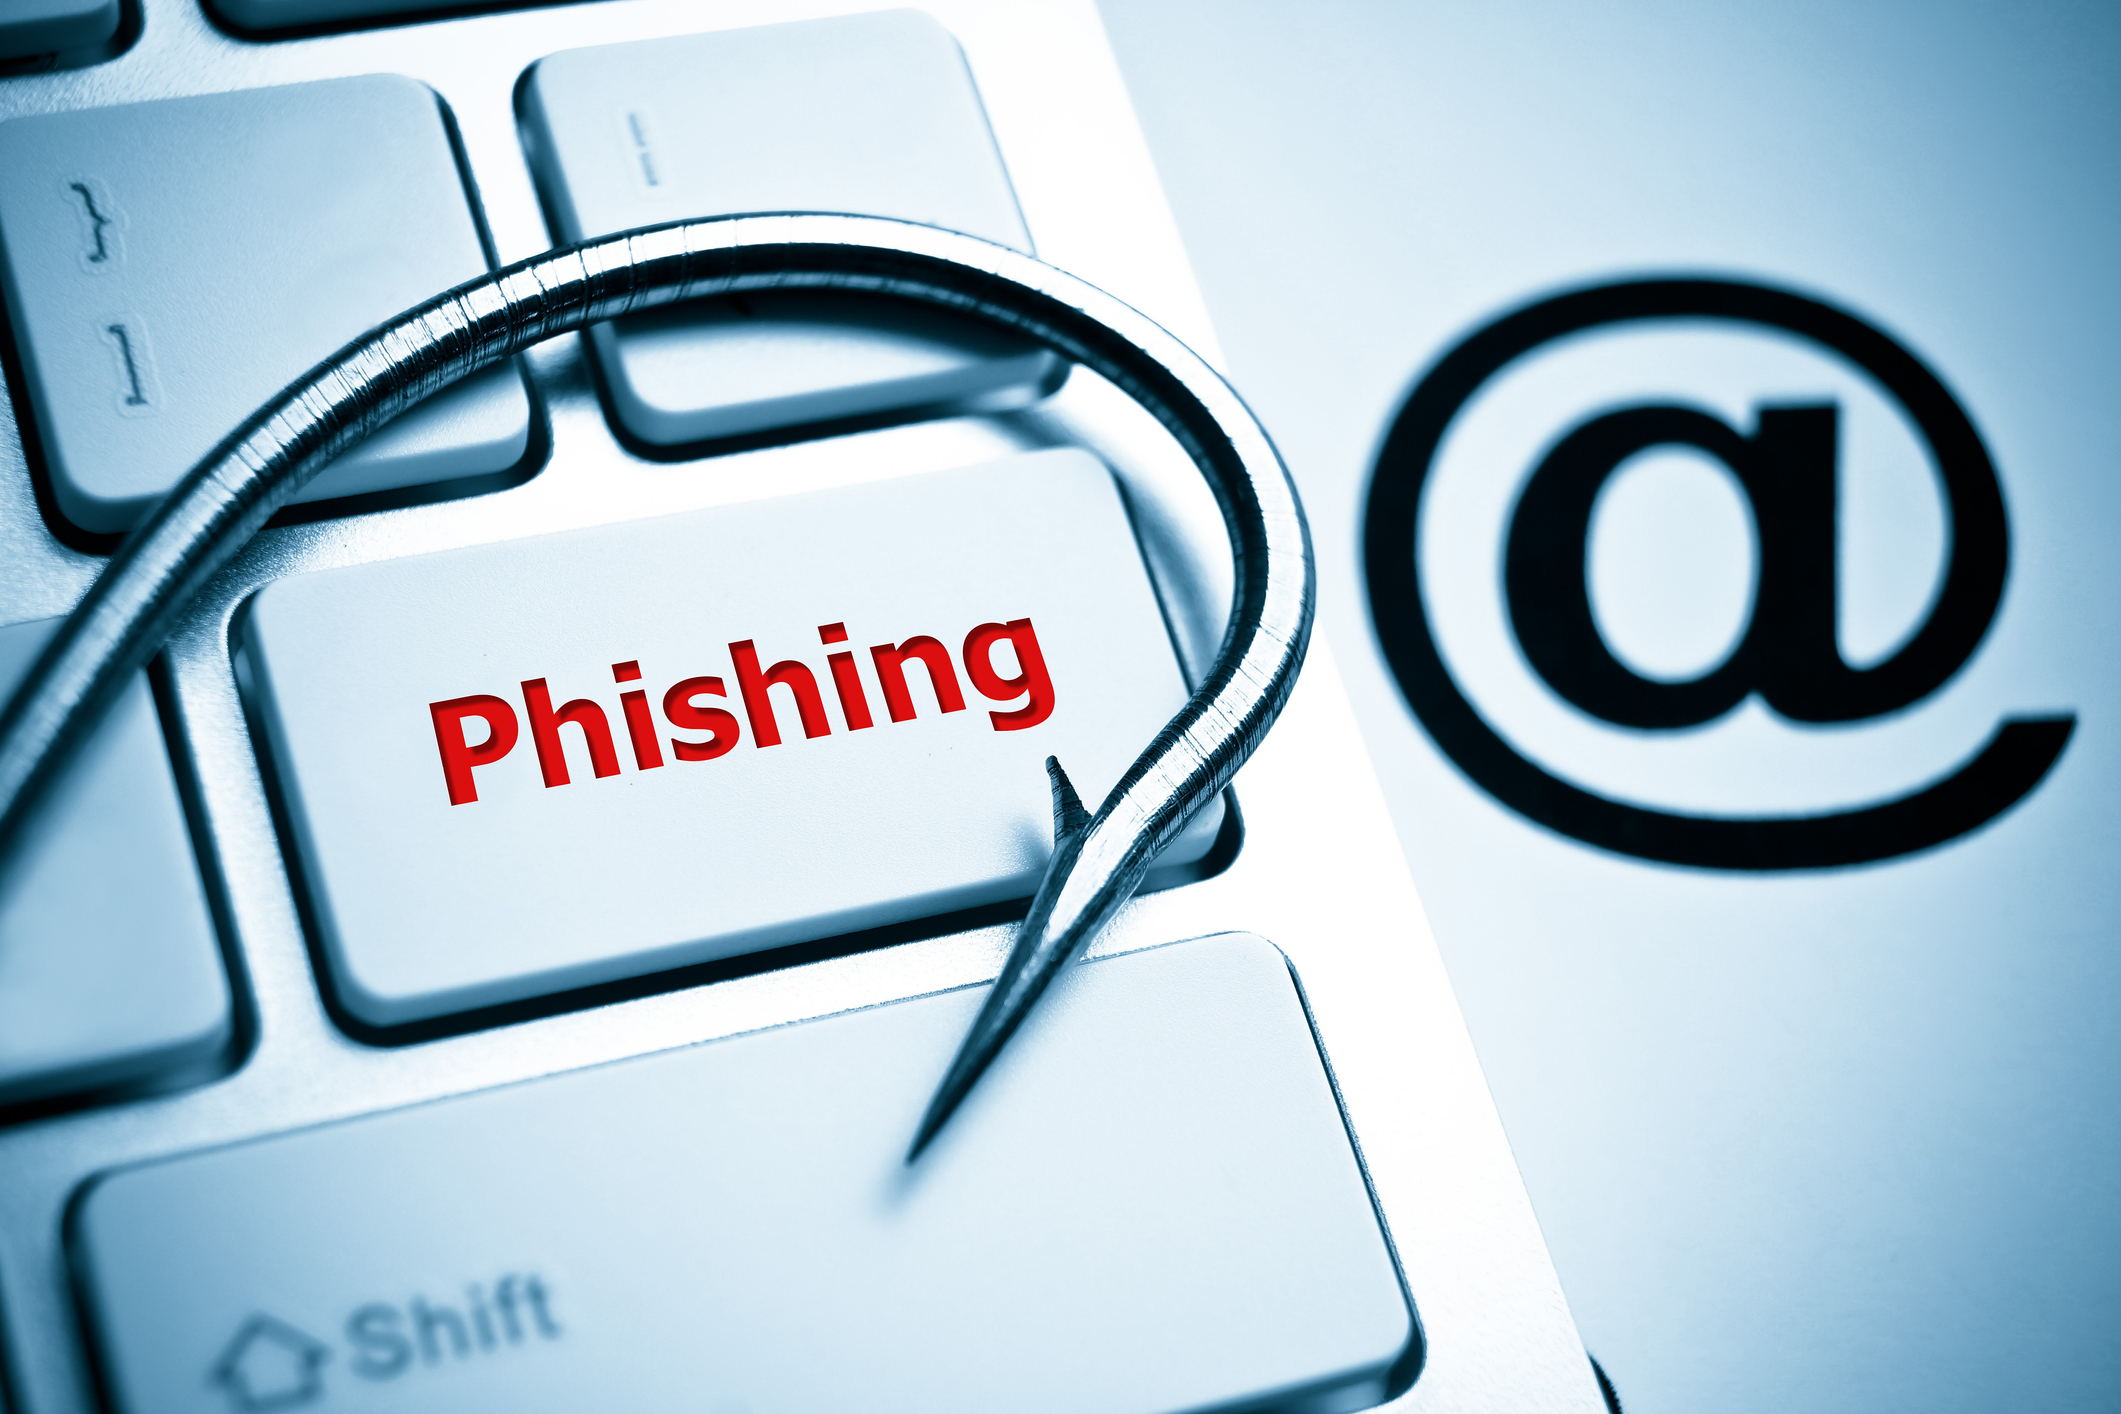 Don't Bite the Phish – What is Phishing and How to Avoid Getting Bitten